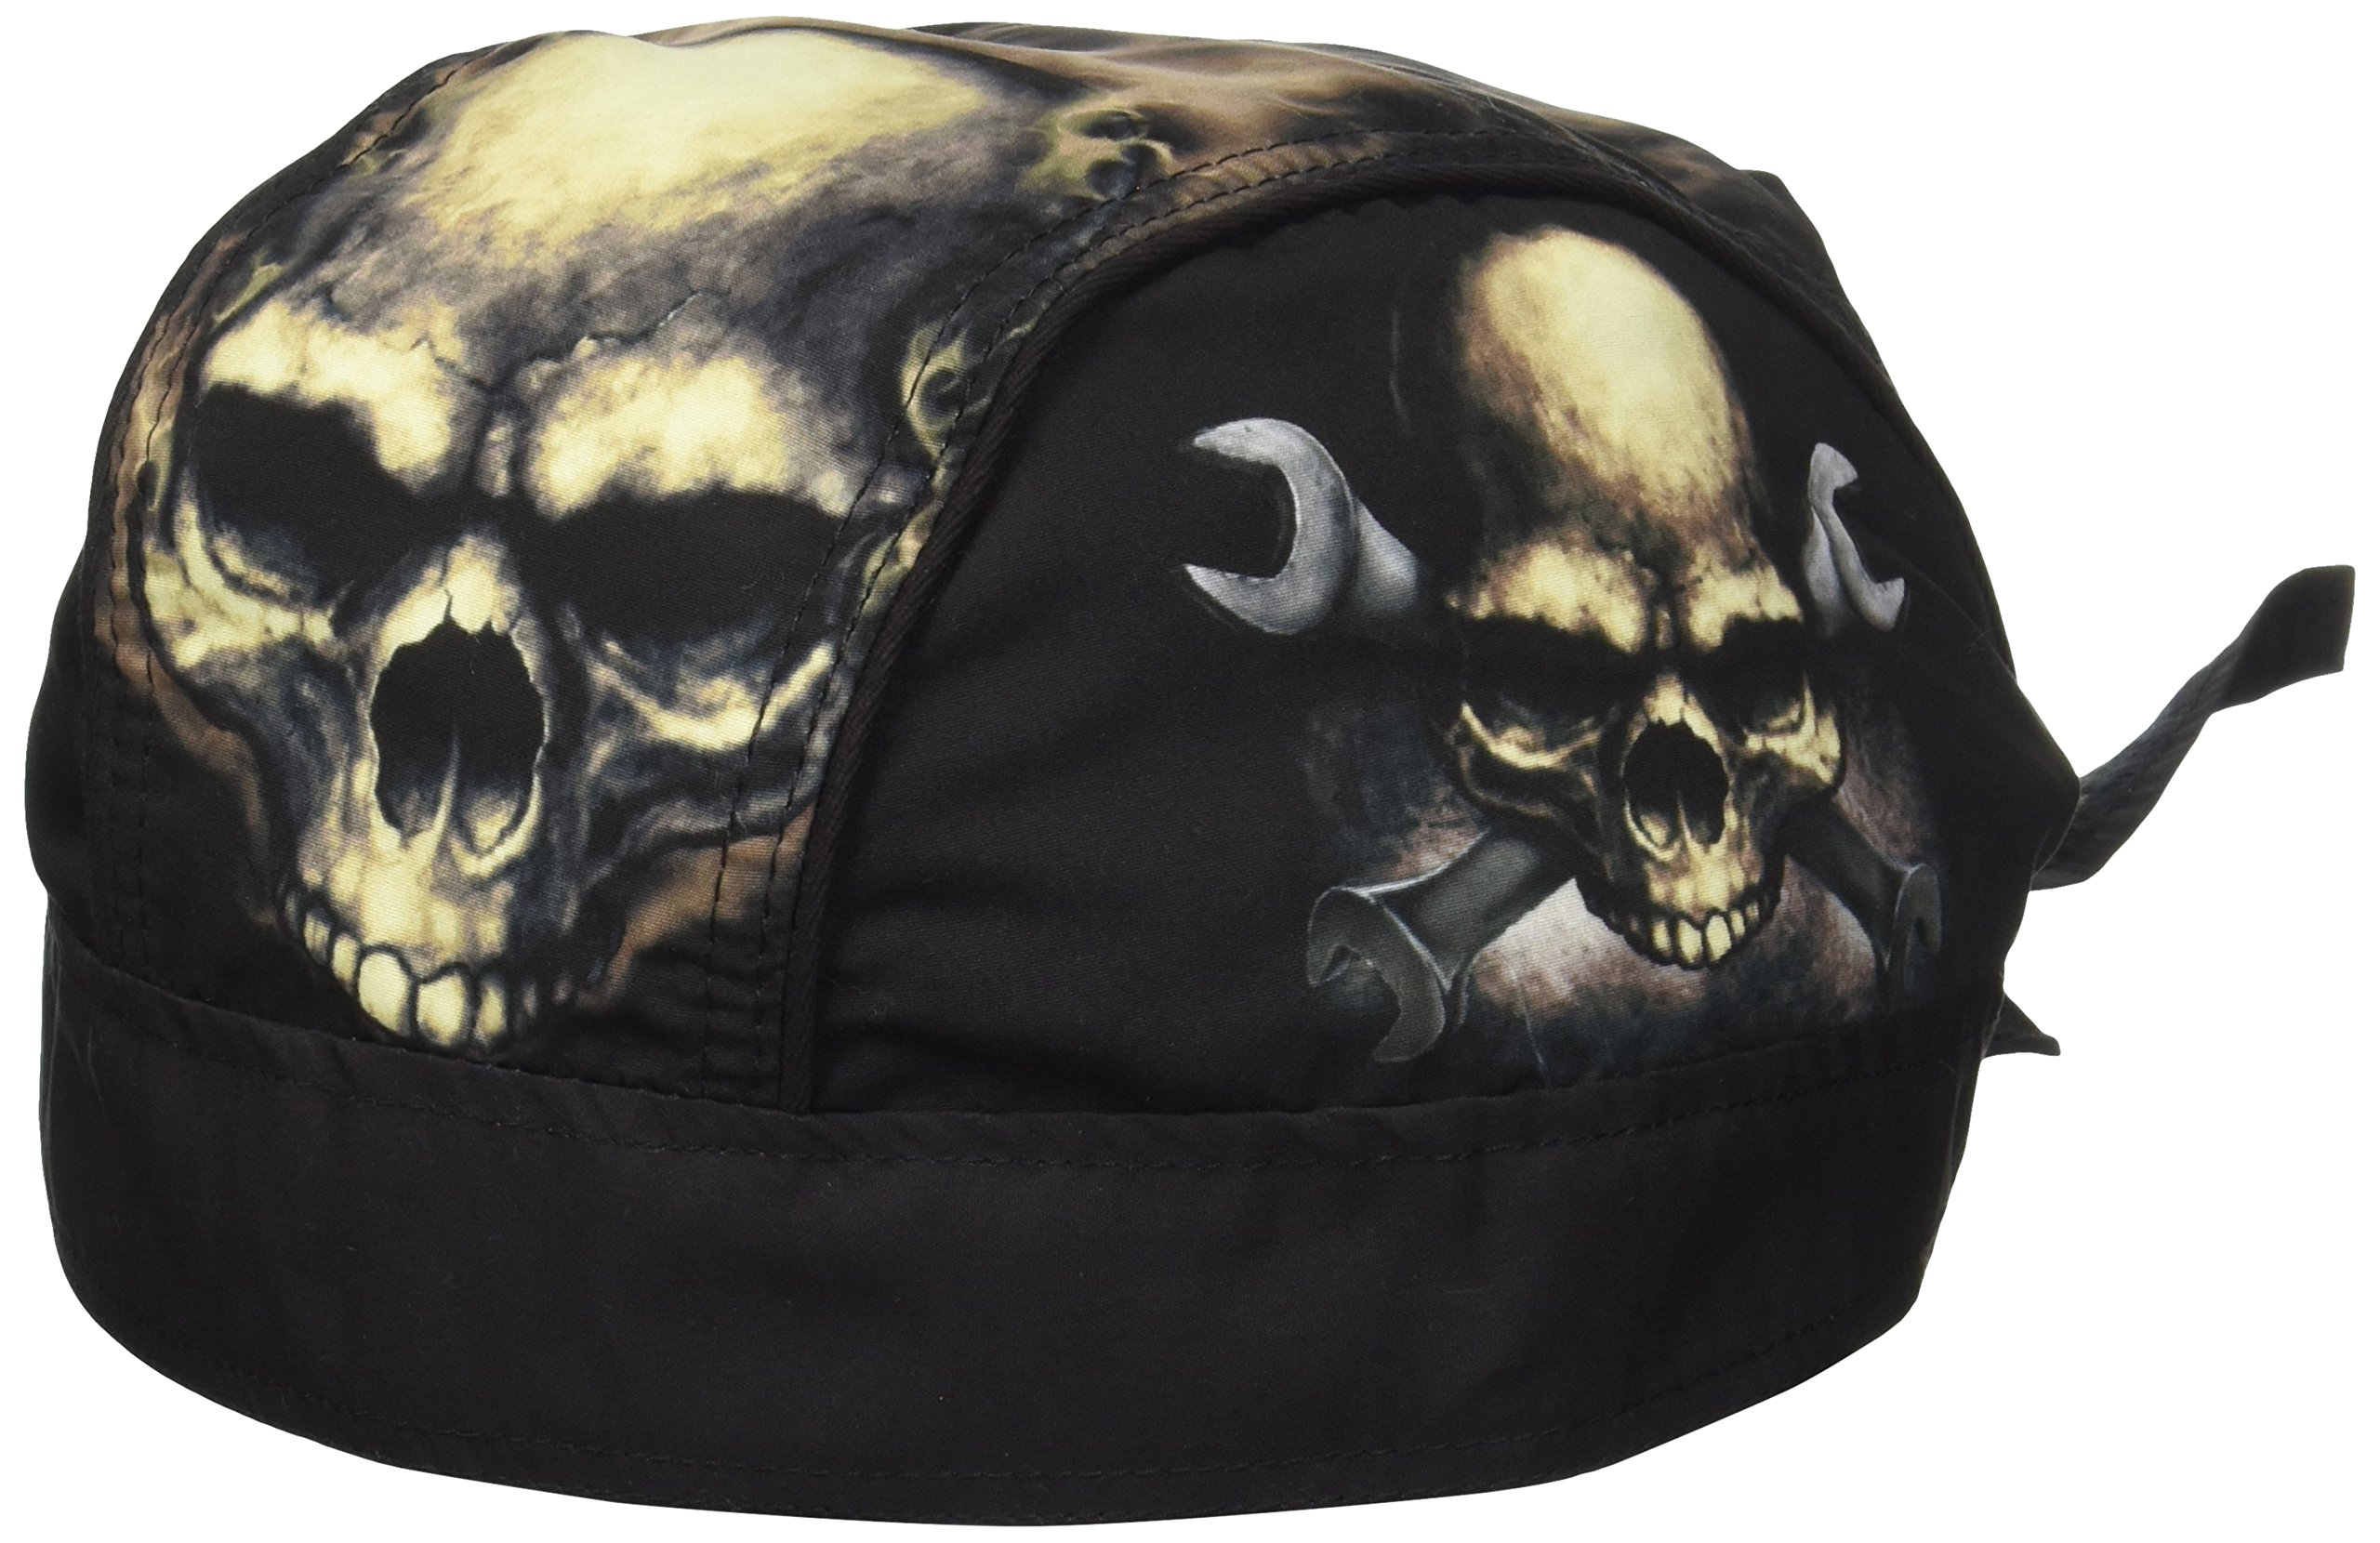 Hot Leathers Skull and Wrench Bones Head Wrap (Black) by Hot Leathers